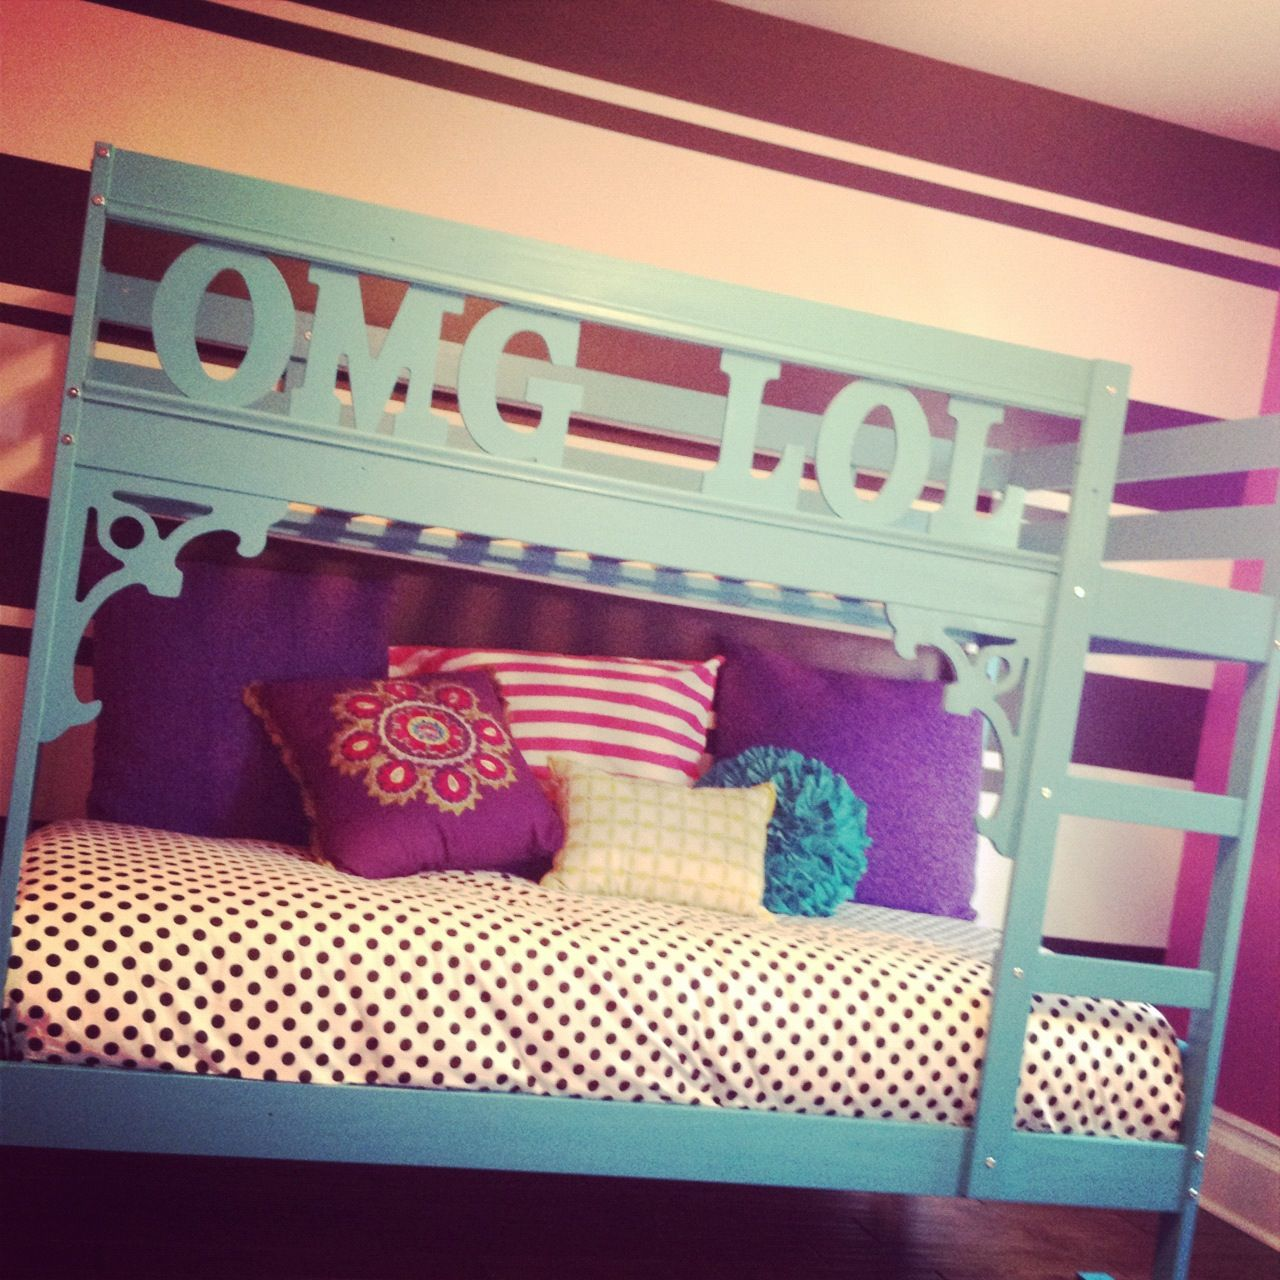 Ikea bunk bed hack.  For my pre-teen girl's bedroom.  It's turning out so nicely!!!